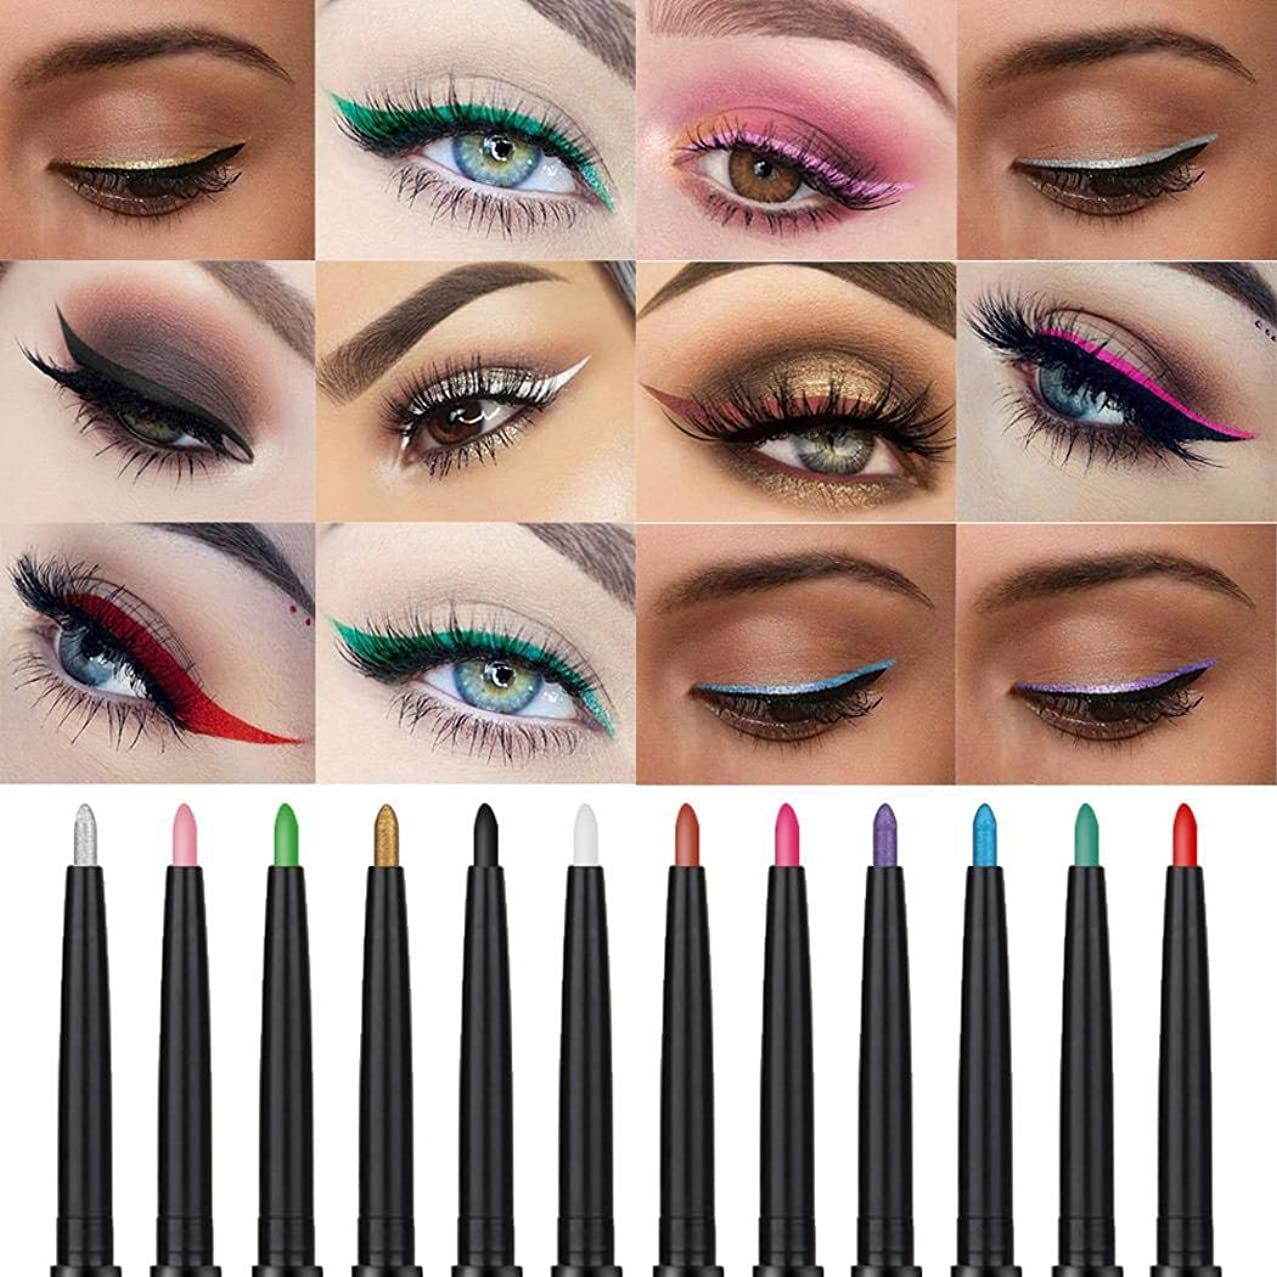 eubell Colorful Eyebrow Pencil Eyeliner Waterproof Eyeshadow Pencil Eyebrow Lip Liner Pen Makeup Cosmetic Tool